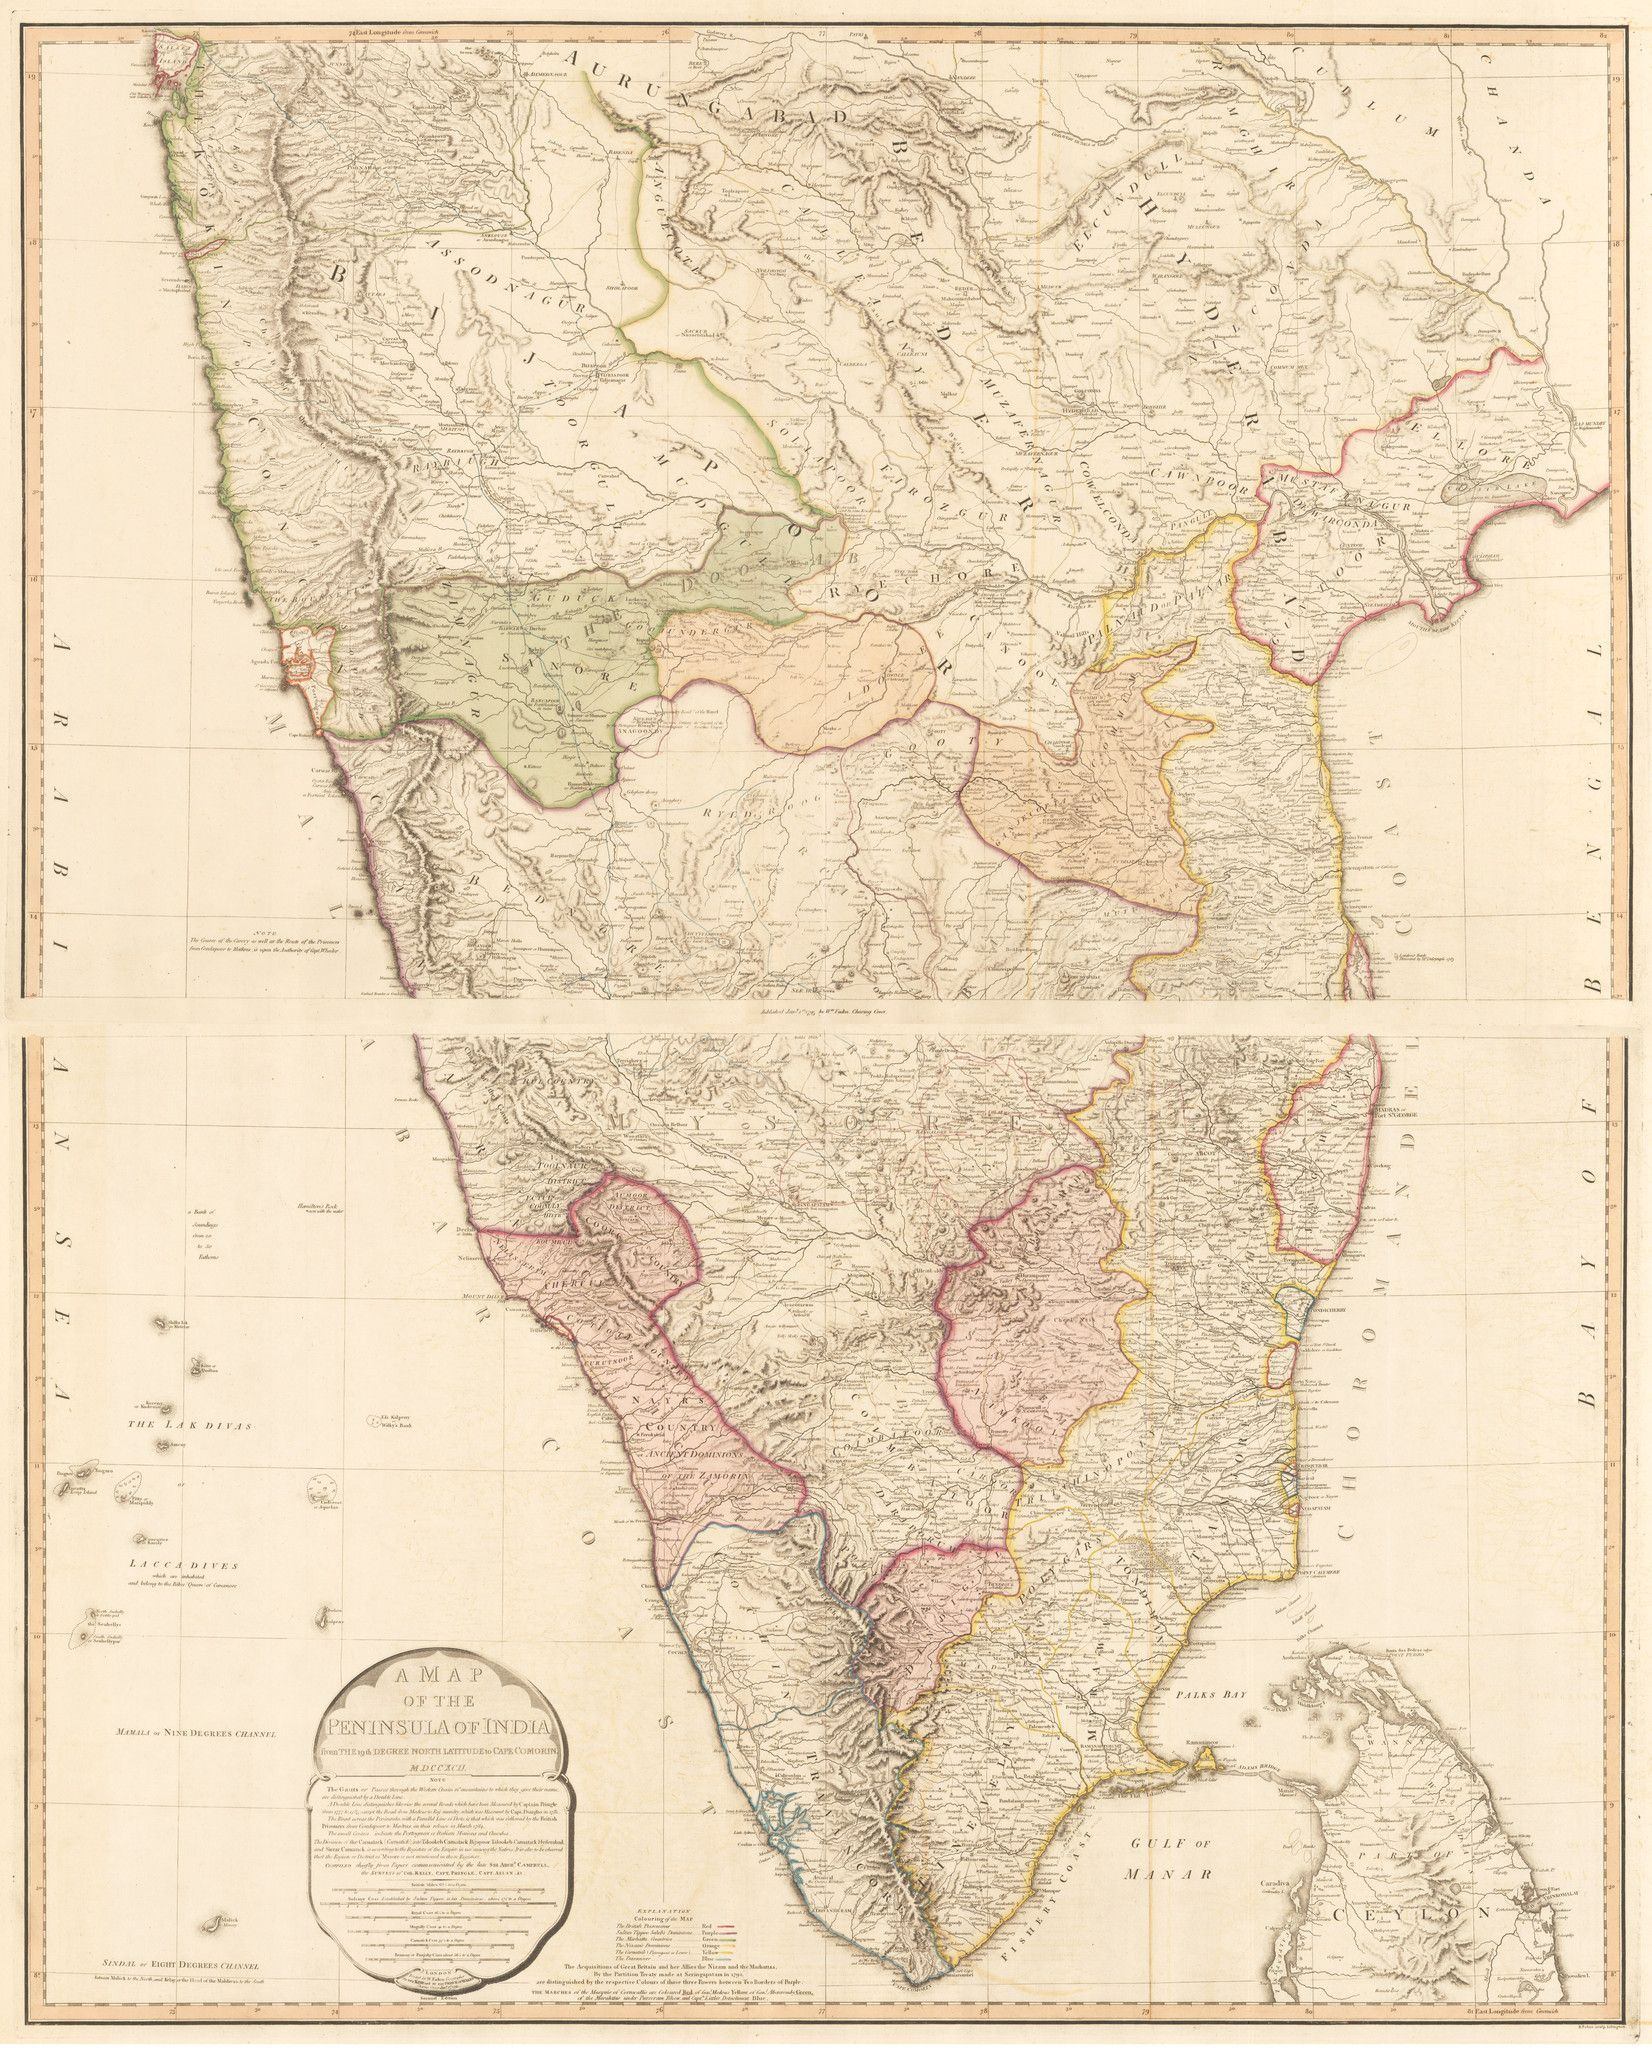 60) A Map of the Peninsula of India, from the 19th degree north latitude to Cape Comorin MDCCXCII